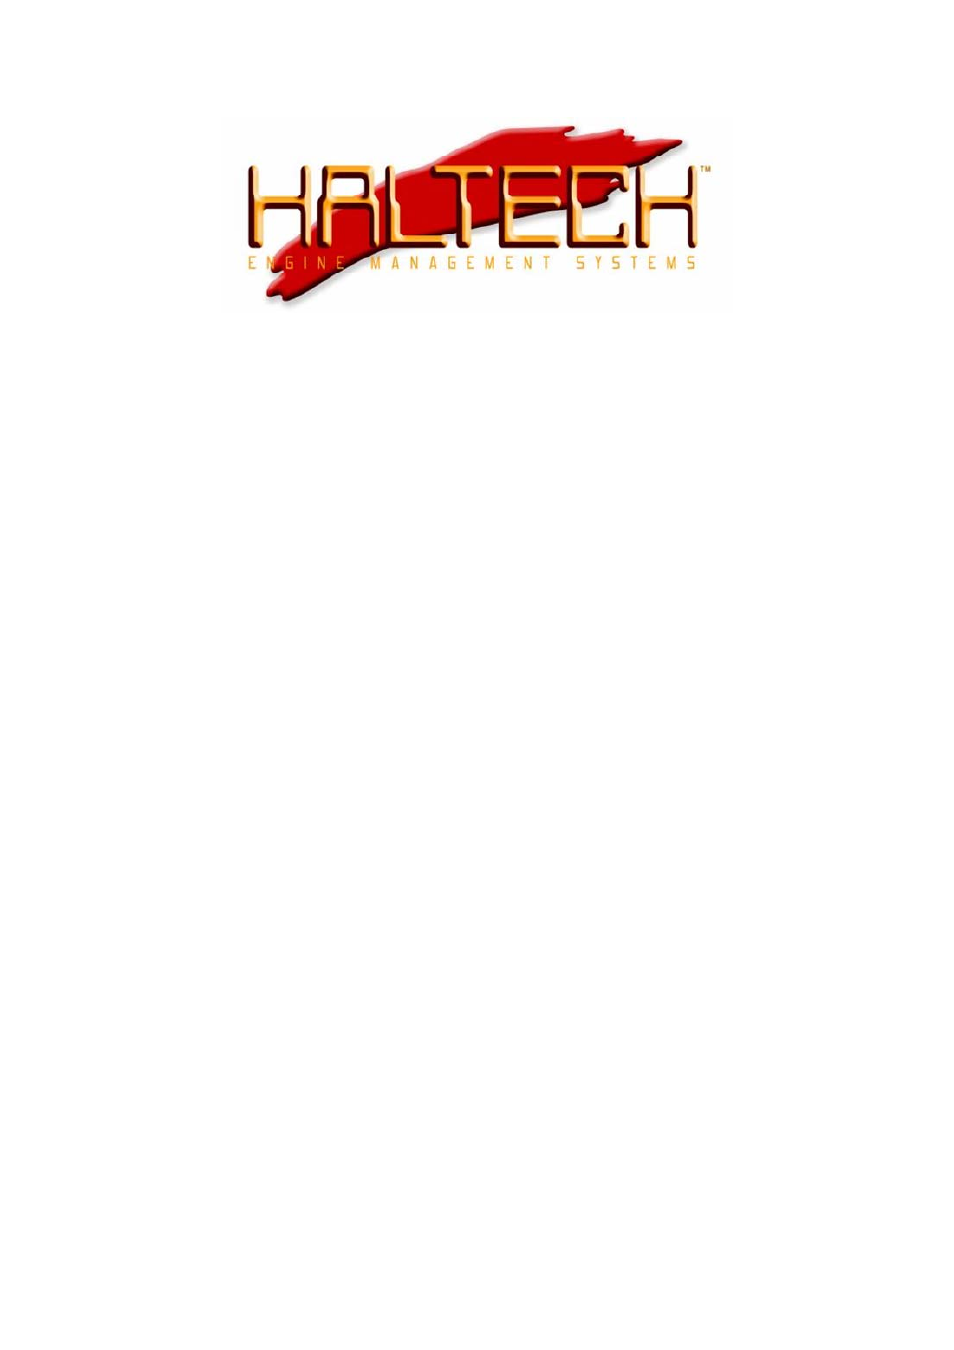 Haltech RA10 User Manual | 3 pages